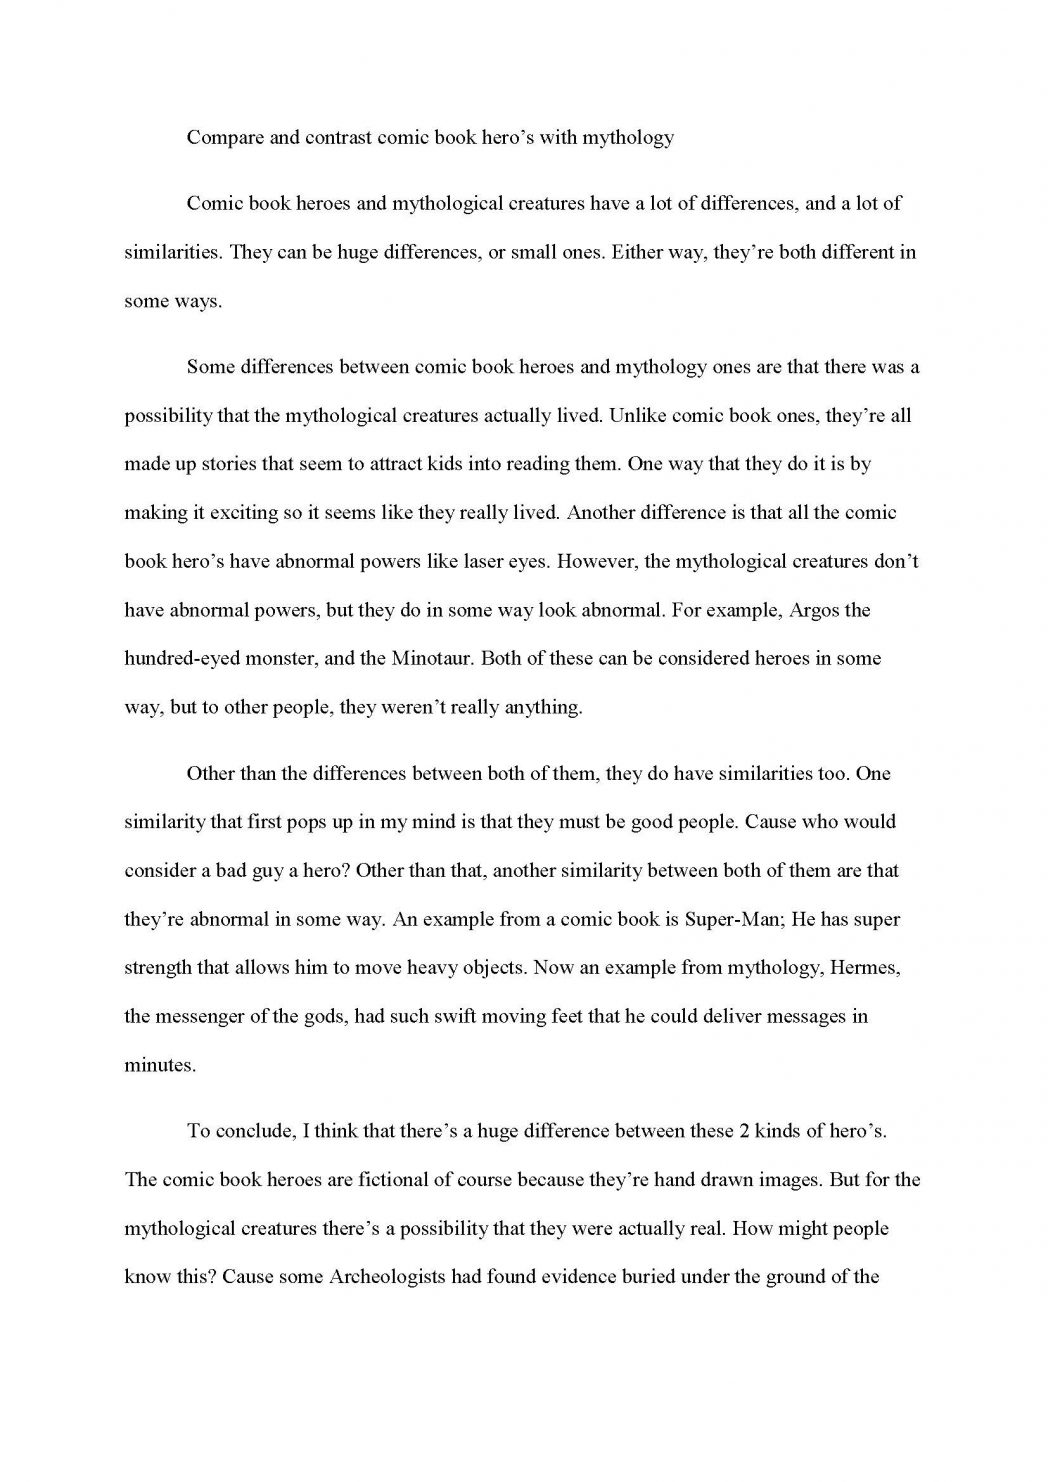 010 Essay Example Compare And Contrast Examples High School Middle S 4th Grade Food Vs College 6th 3rd 5th Block Format Pdf Sensational Sample Introduction For Comparison Point-by-point Of An Paragraph Full